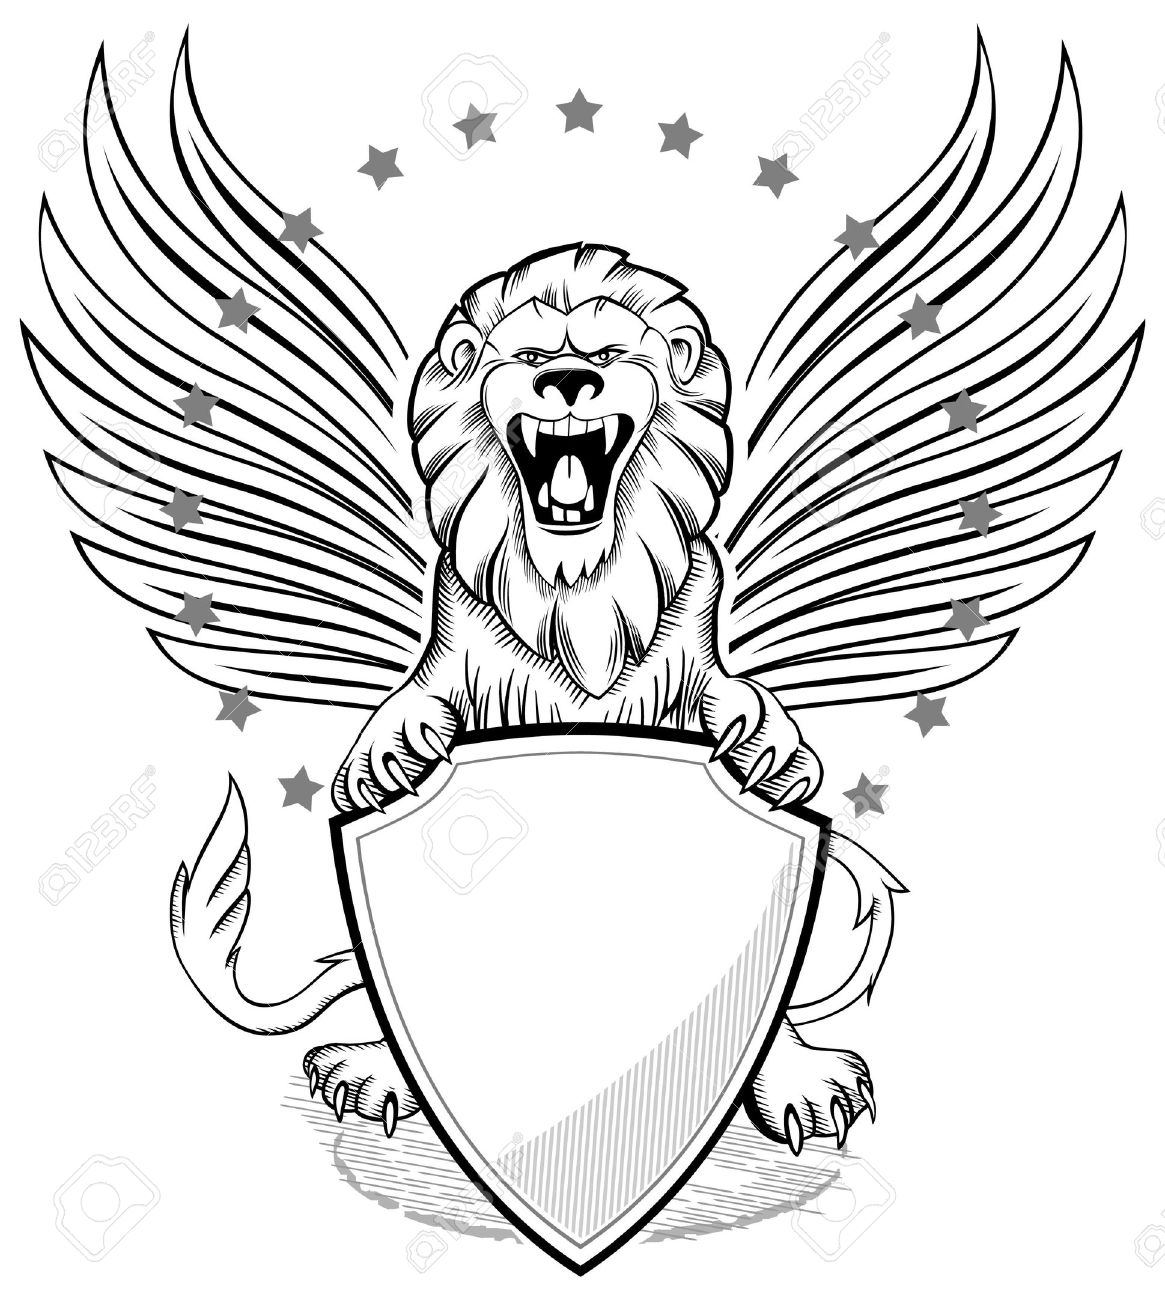 1165x1300 Roaring Winged Lion With Shield Insignia Royalty Free Cliparts